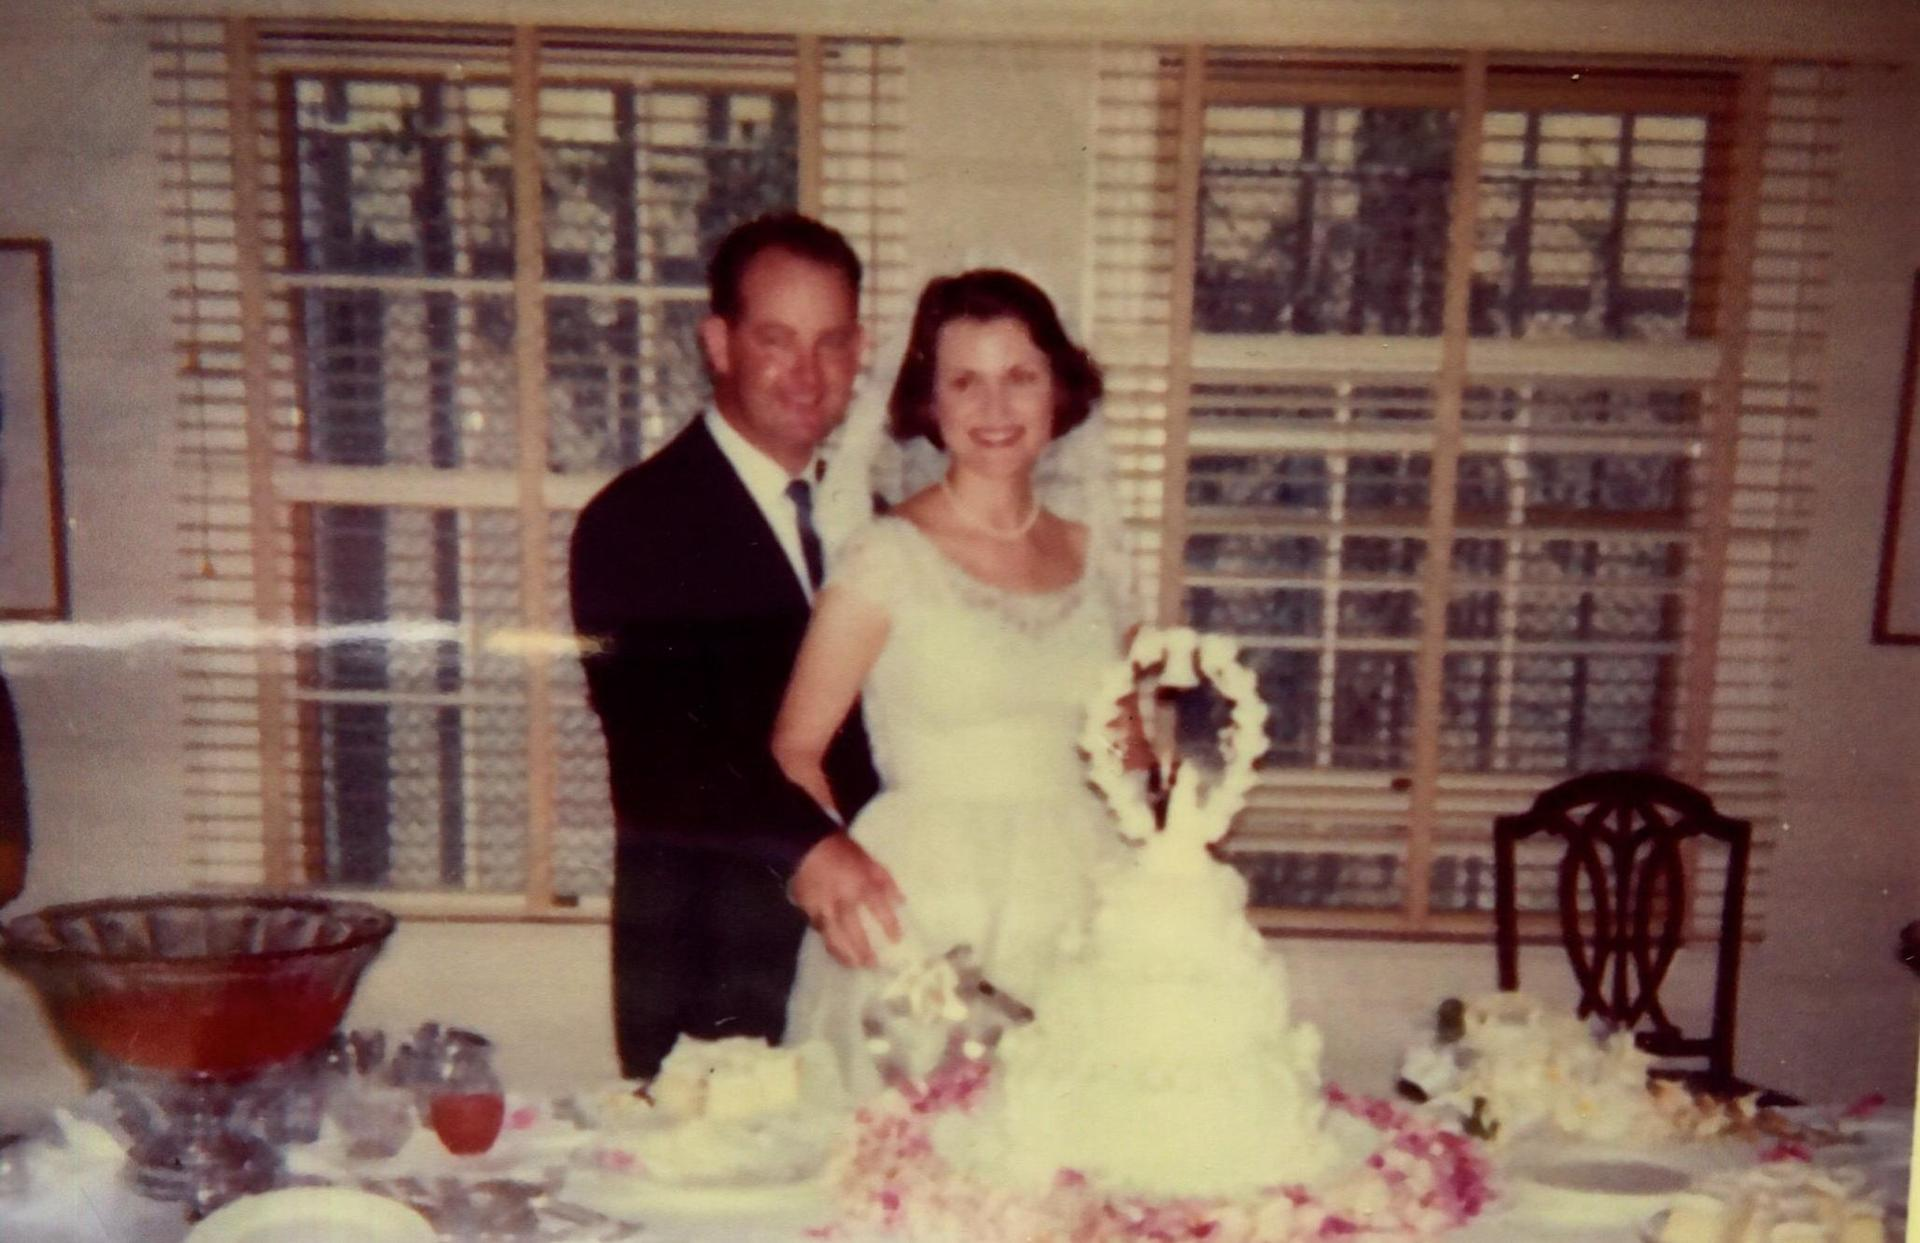 Don Hastings married his wife, Kay in 1962 and had their wedding reception in the Reiterman House